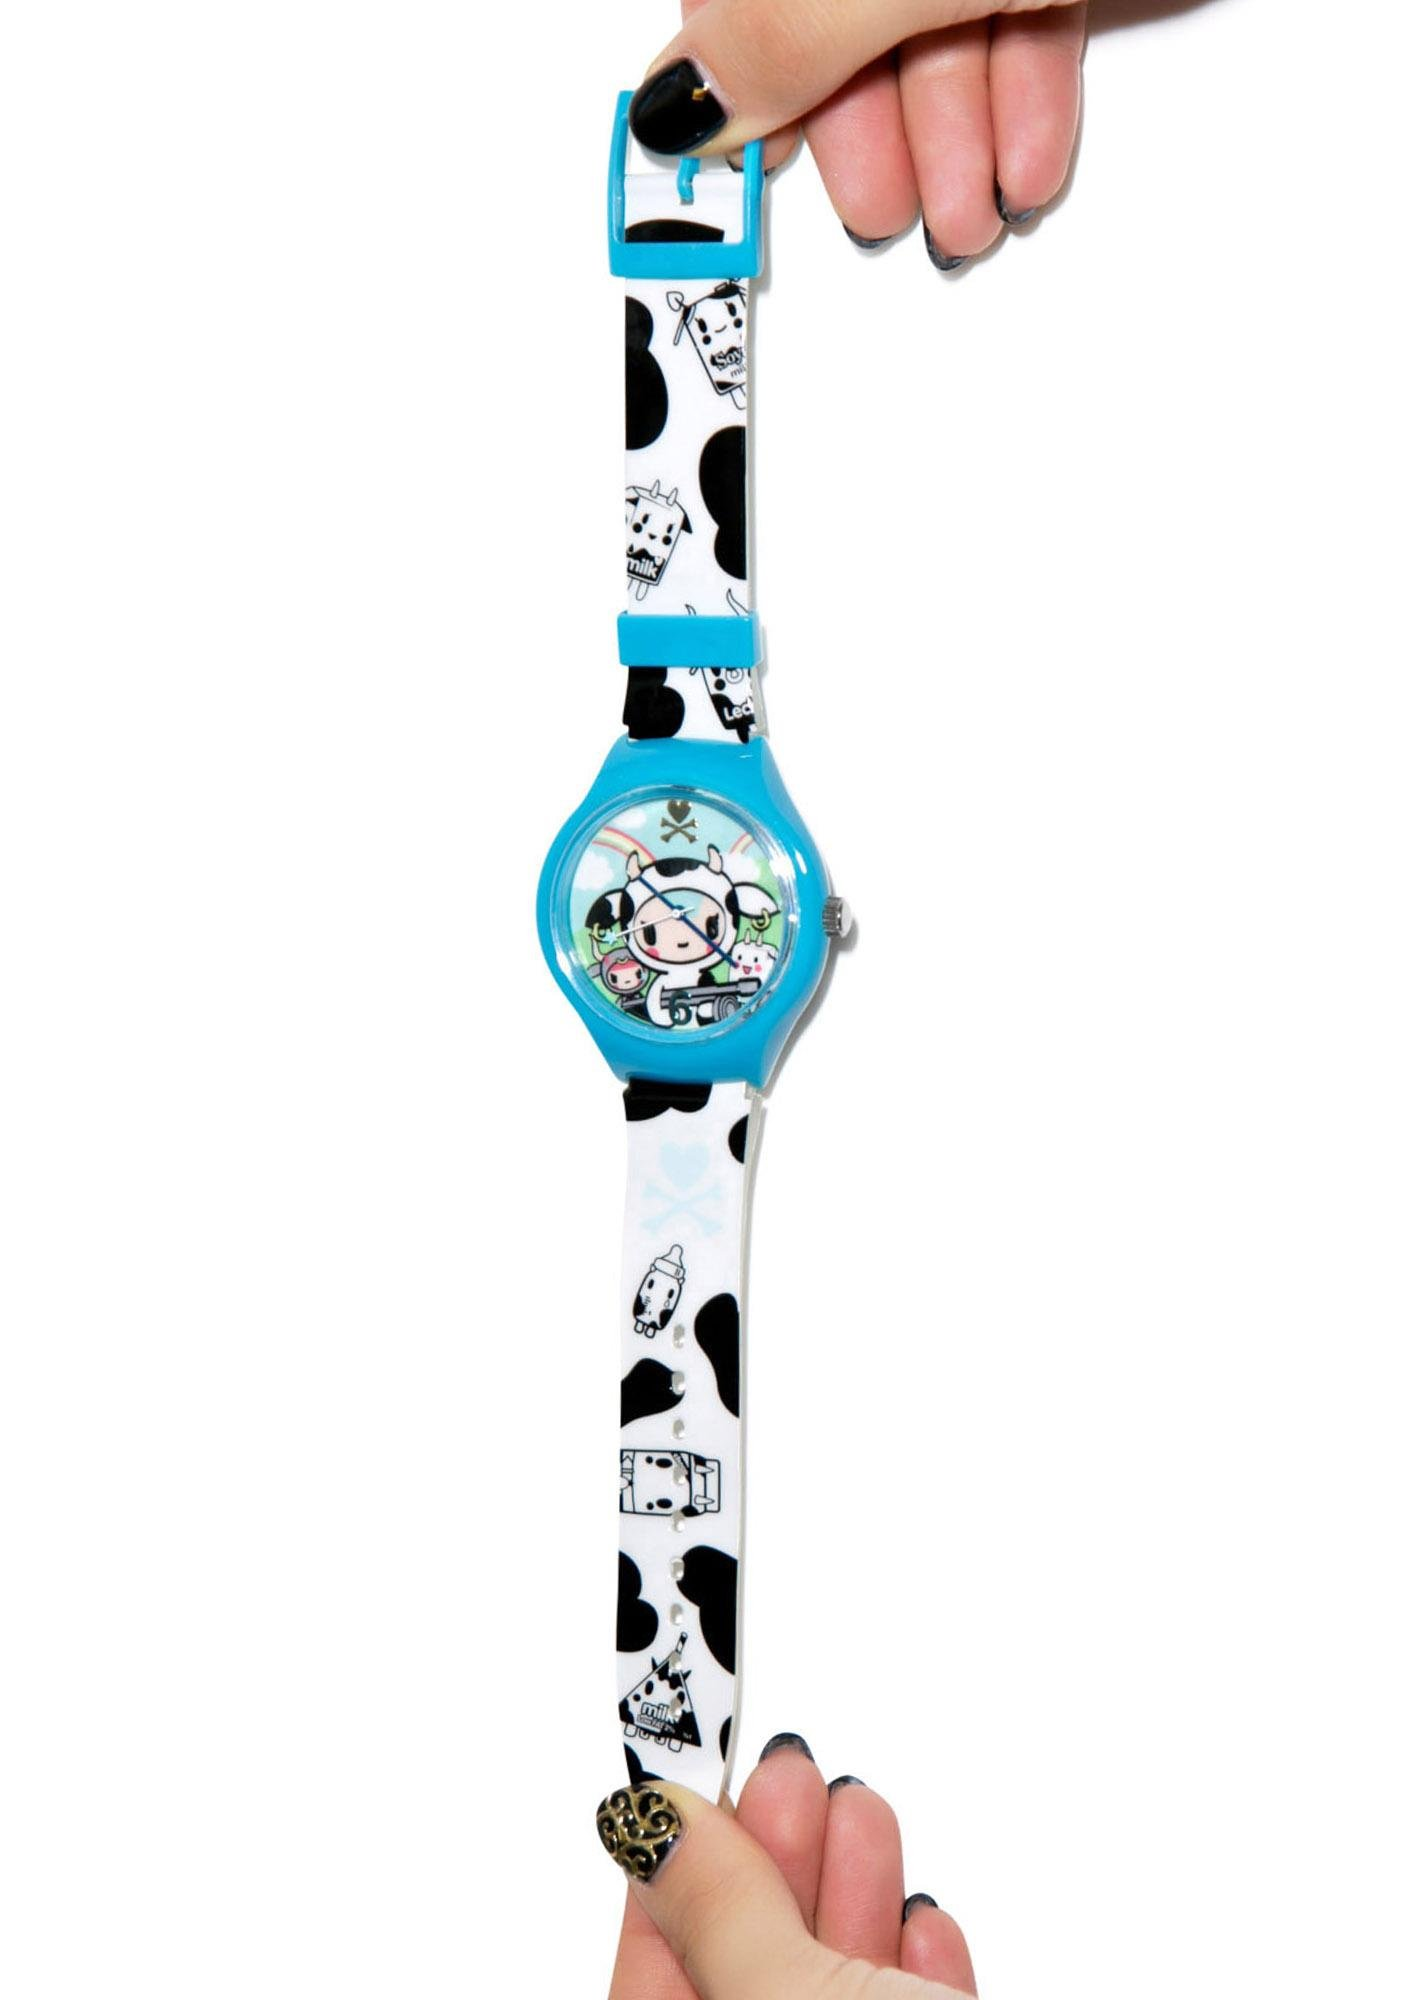 Tokidoki Moofia Watch